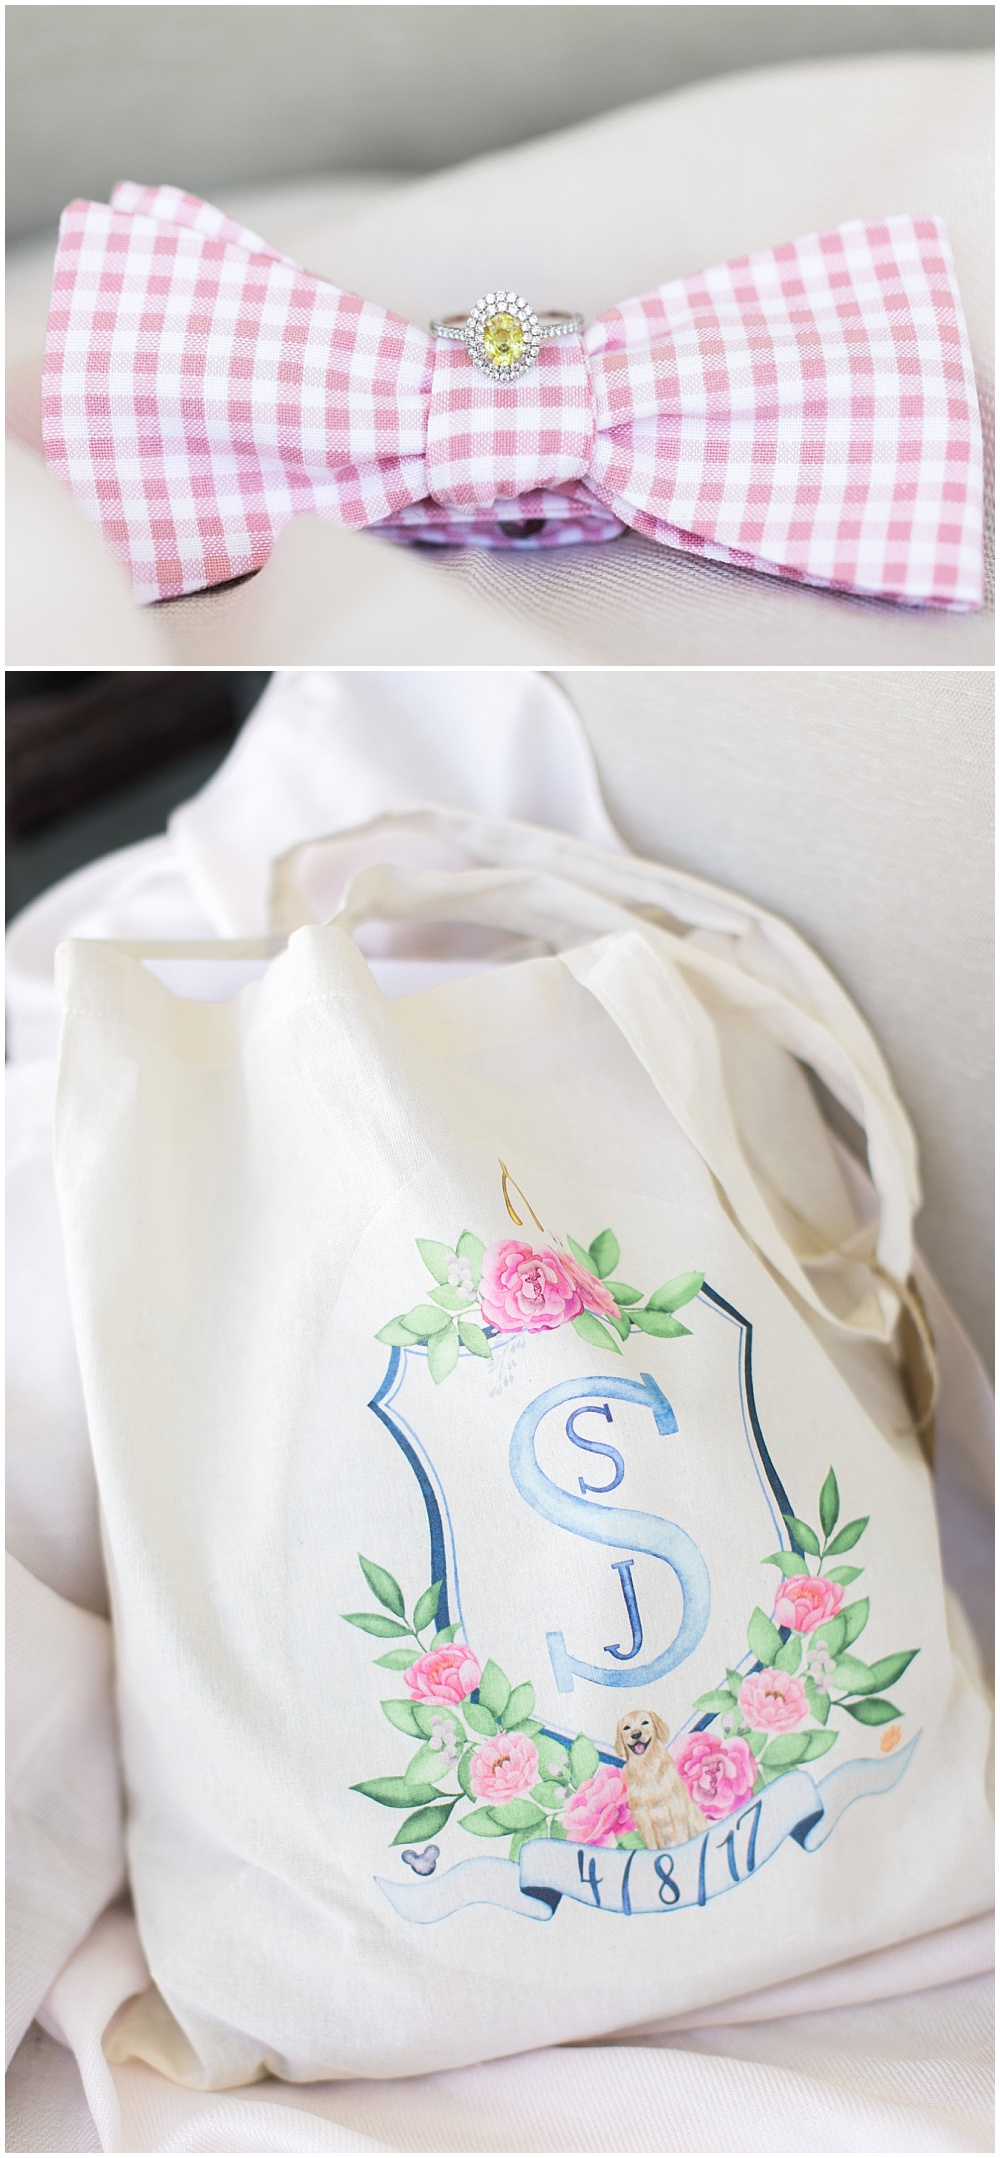 Wedding tote bag with custom monogram crest, navy and pink southern wedding | Ivan & Louise Images and Jessica Dum Wedding Coordination